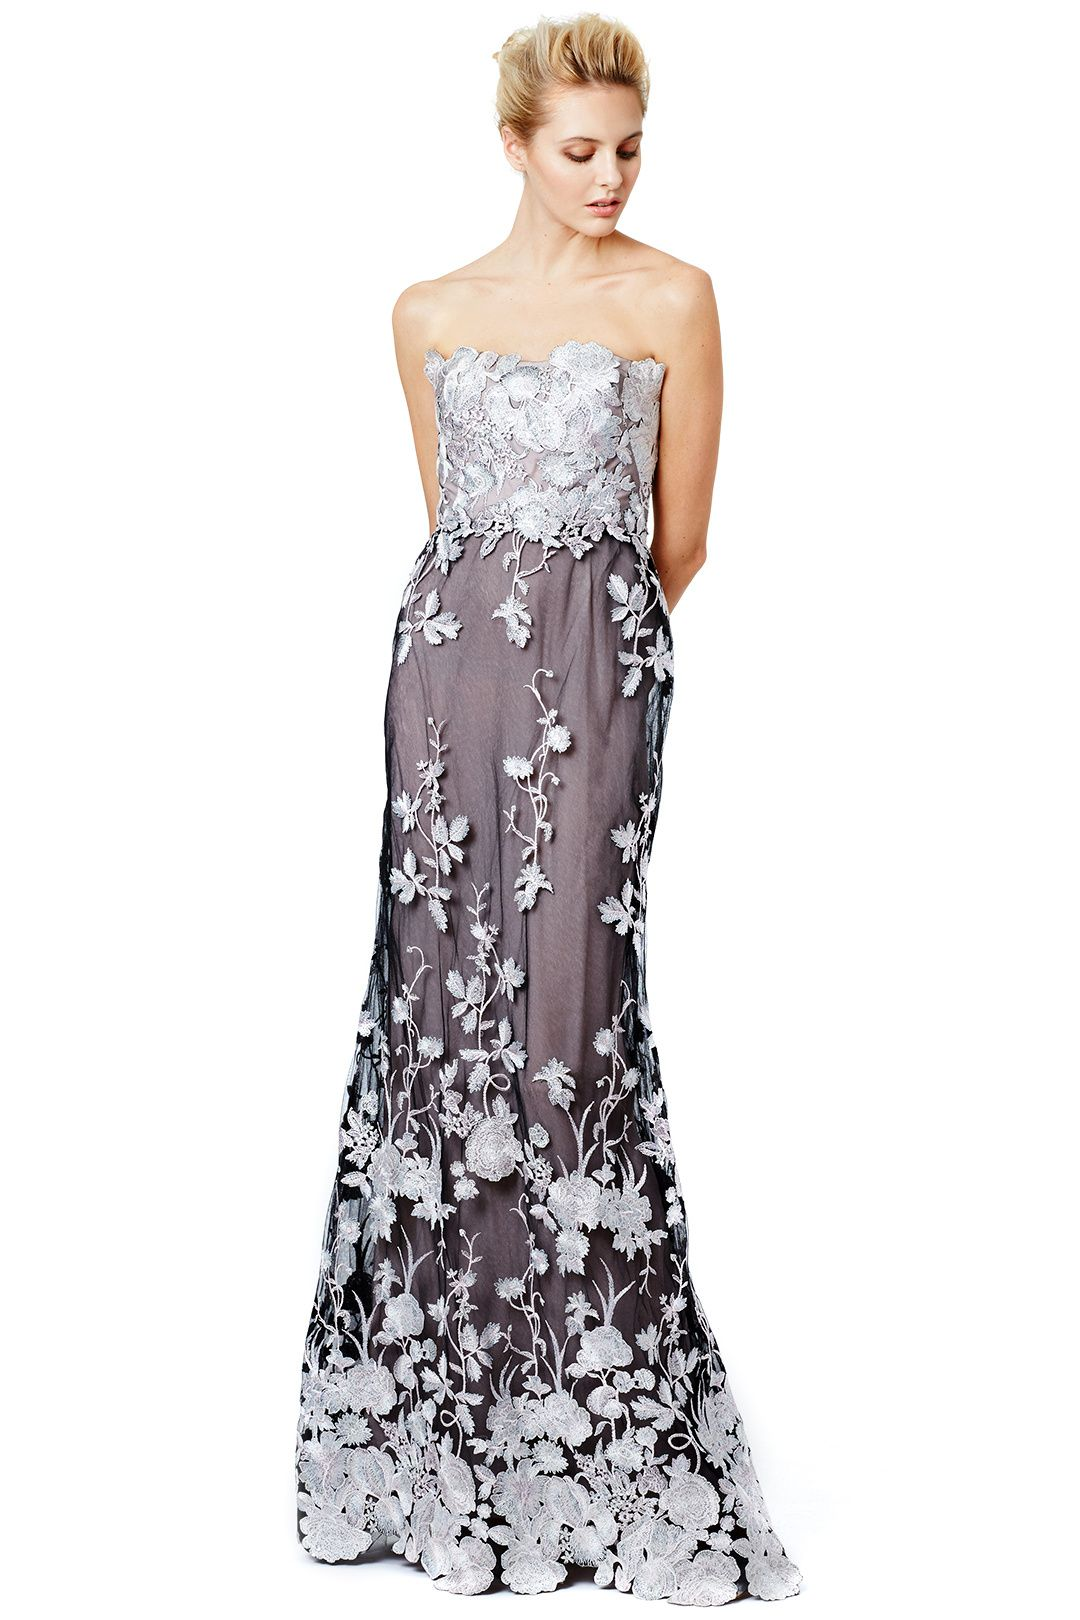 970fc83dc8286 Fontaine Gown by Marchesa Notte for  210